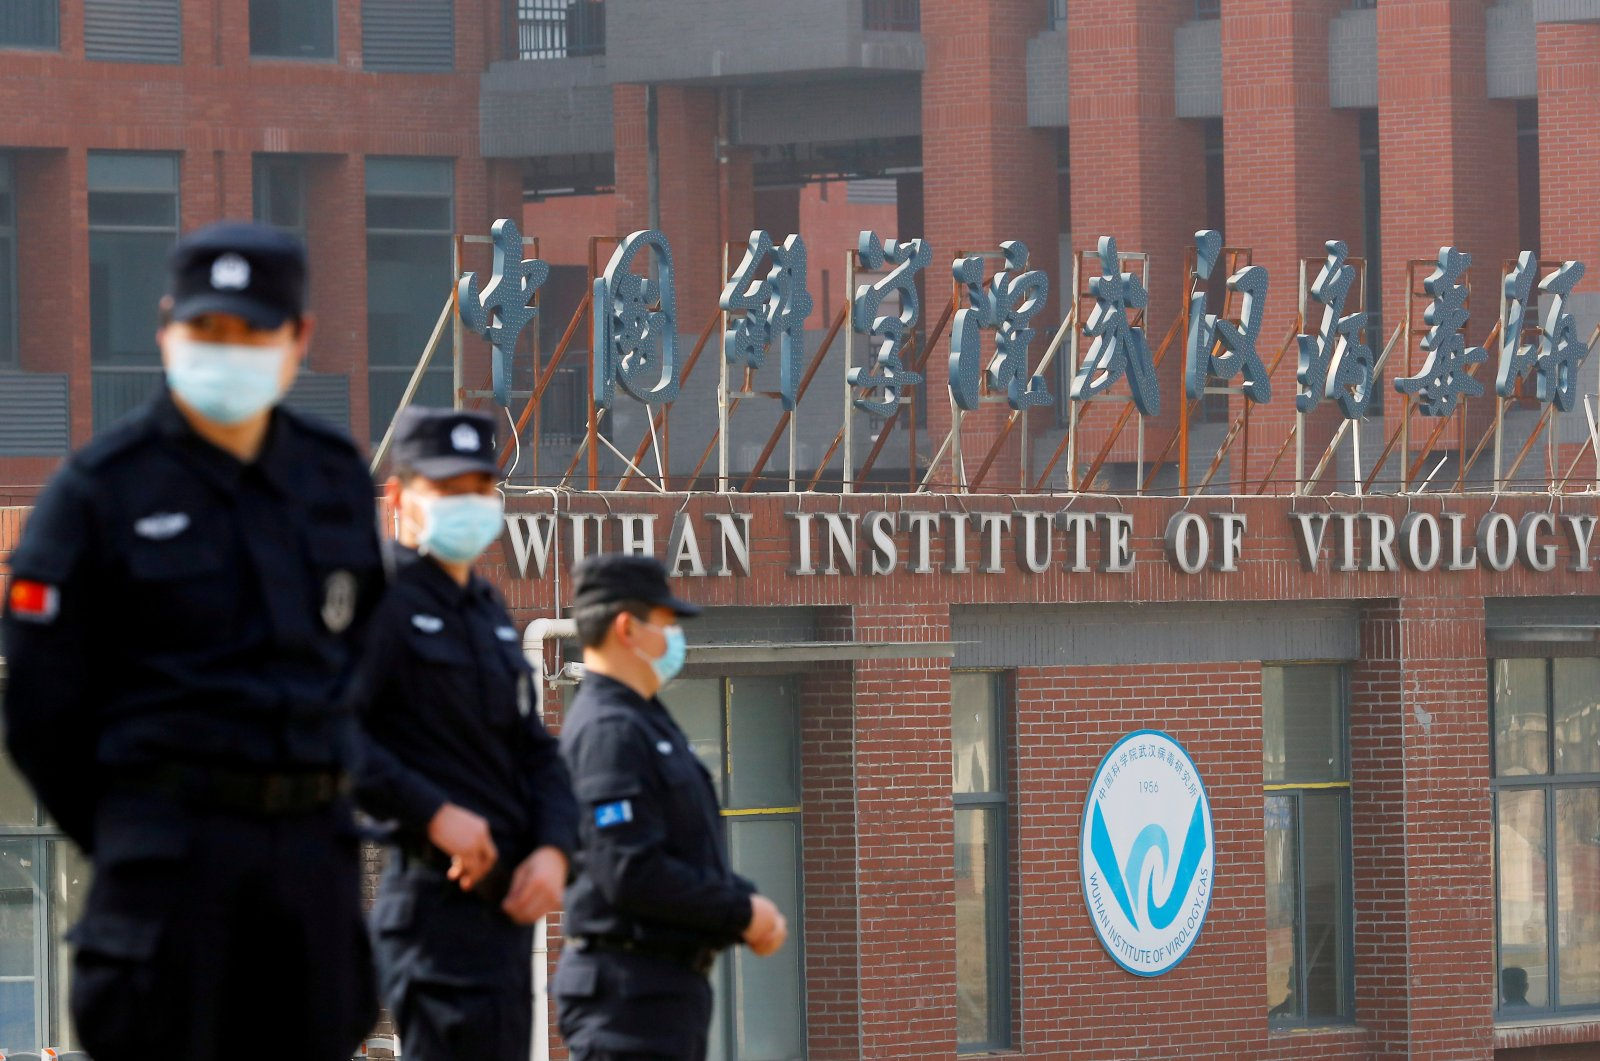 Security personnel keep watch outside the Wuhan Institute of Virology during the visit by the World Health Organization (WHO) team tasked with investigating the origins of the coronavirus disease (COVID-19), inWuhan, Hubei province, China Feb. 3, 2021. (REUTERS/File Photo)